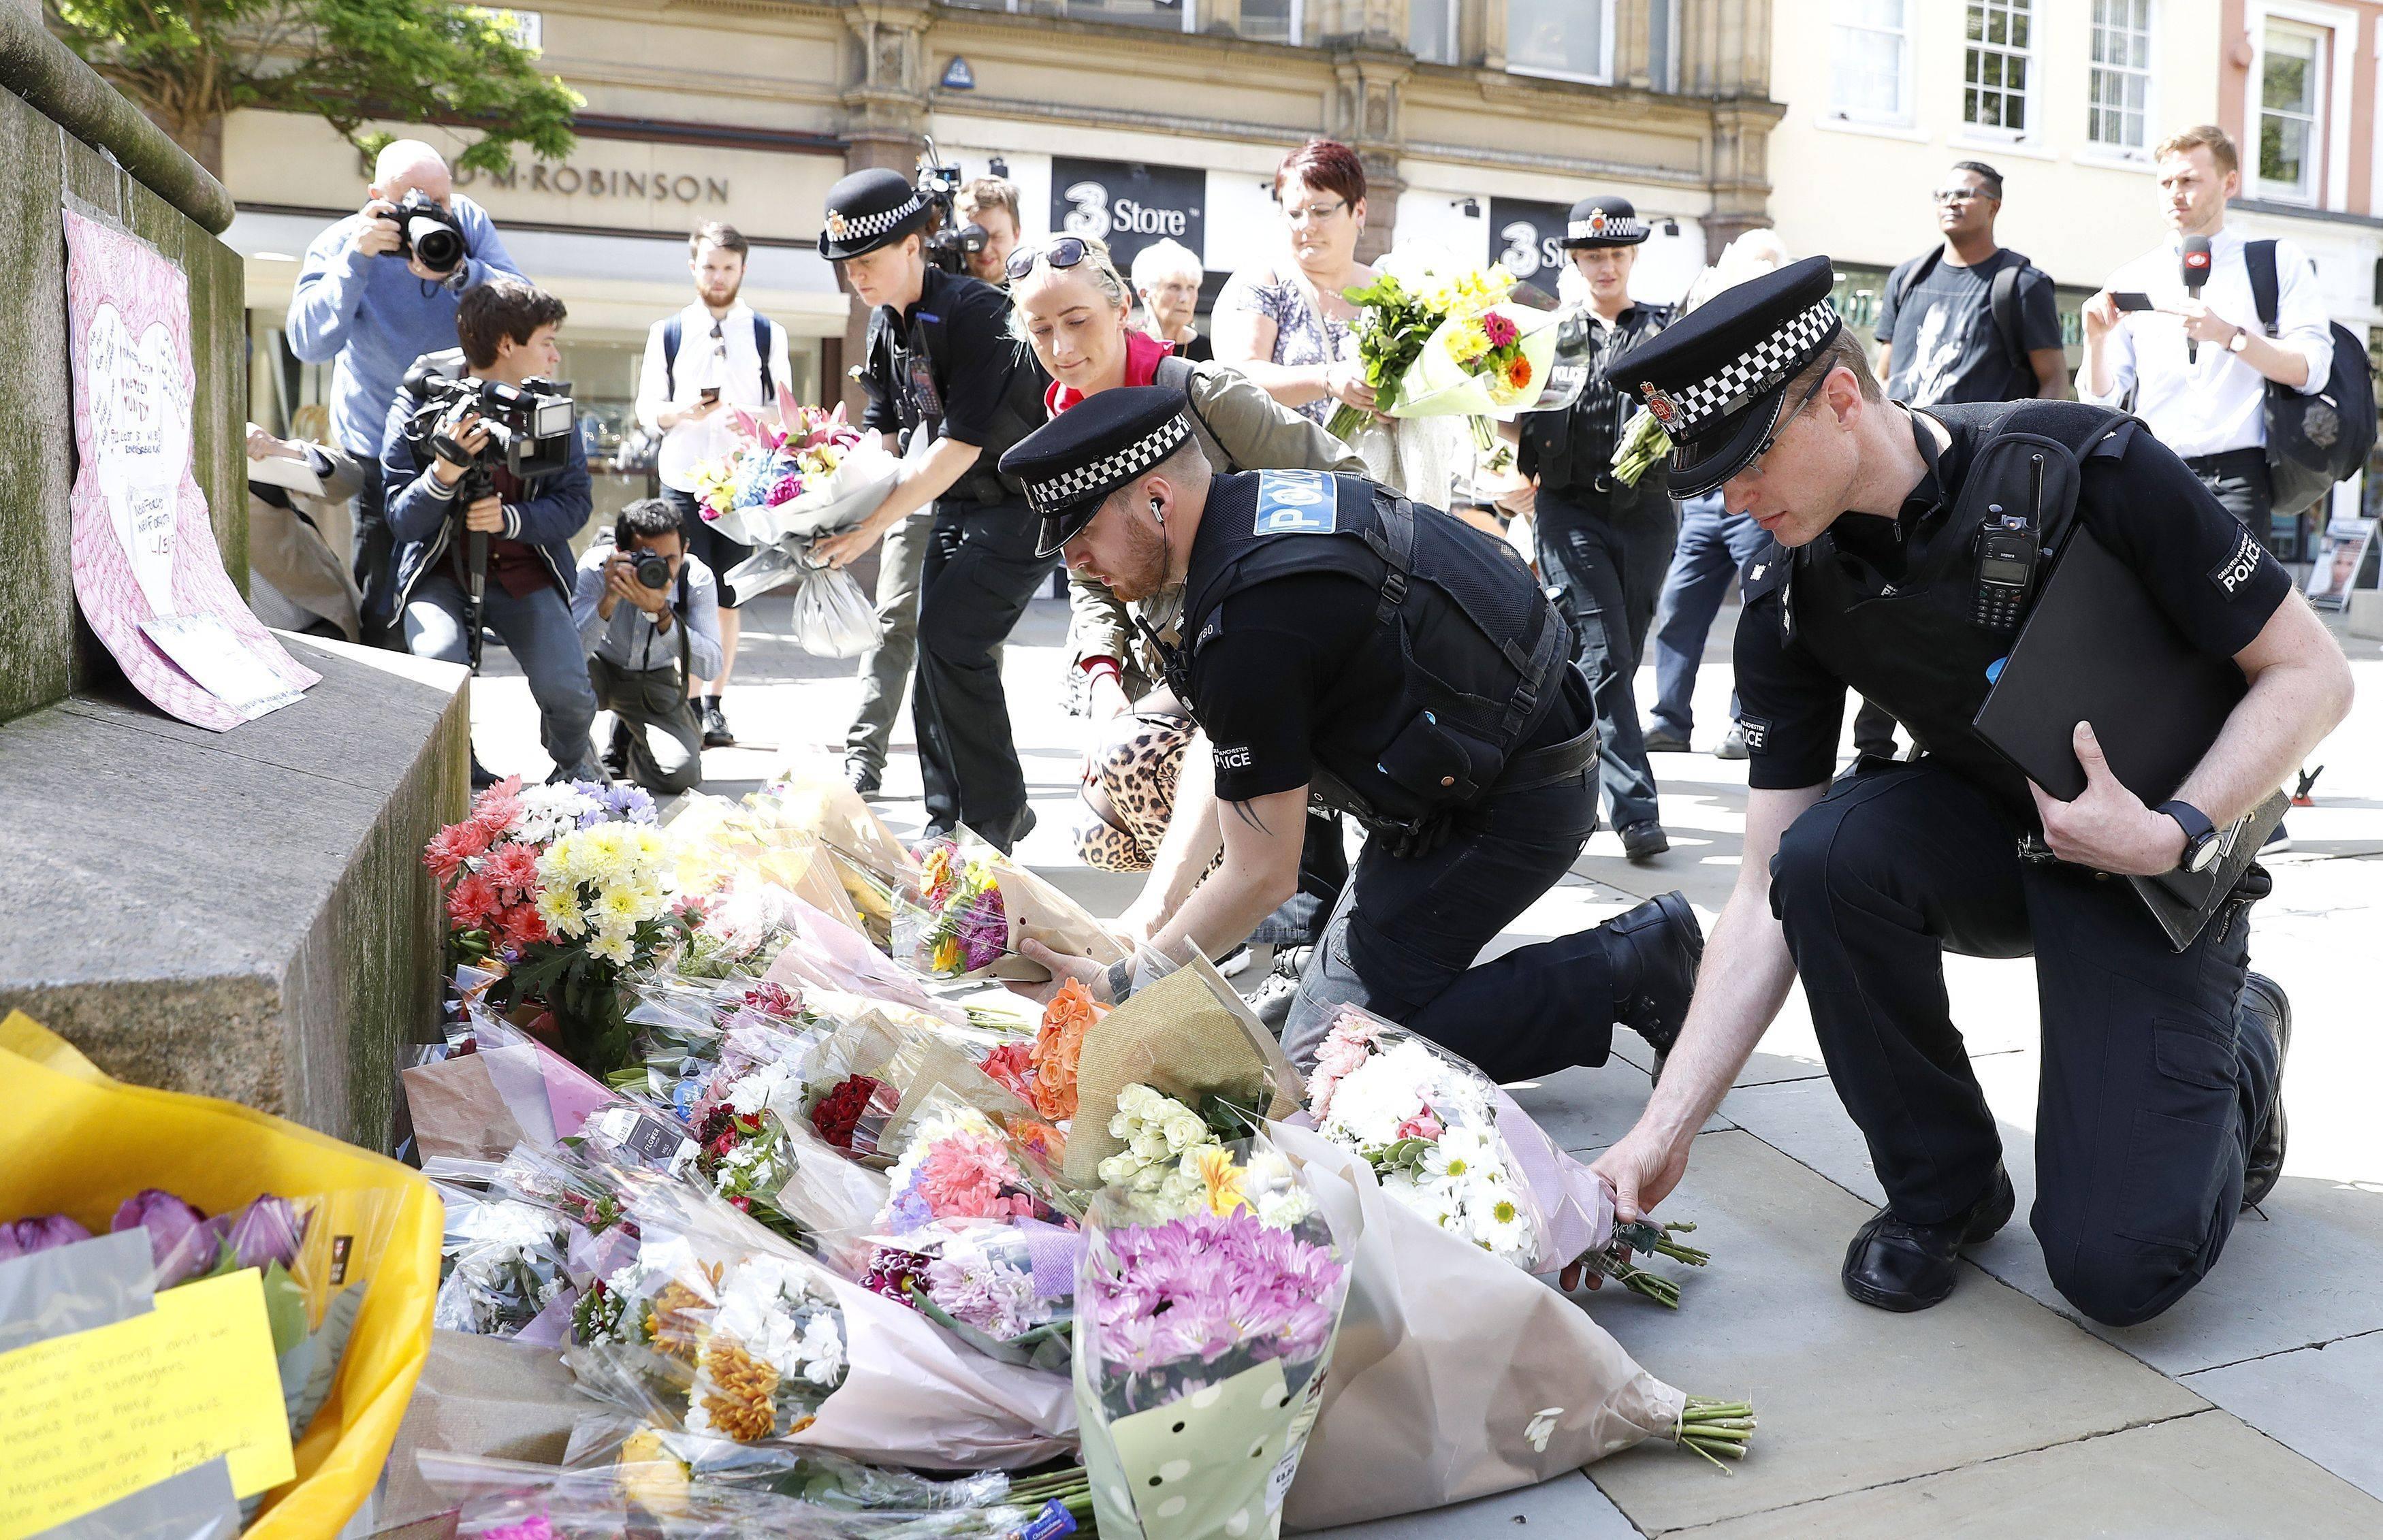 Police offices add to the flowers for the victims of Monday night pop concert explosion, in St. Ann's Square, Manchester, Tuesday May 23, 2017. A 23-year-old man was arrested in connection with Monday's Manchester concert bomb attack. The Islamic State group claimed responsibility Tuesday for the suicide attack at an Ariana Grande show that left over 20 people dead and dozens injured.